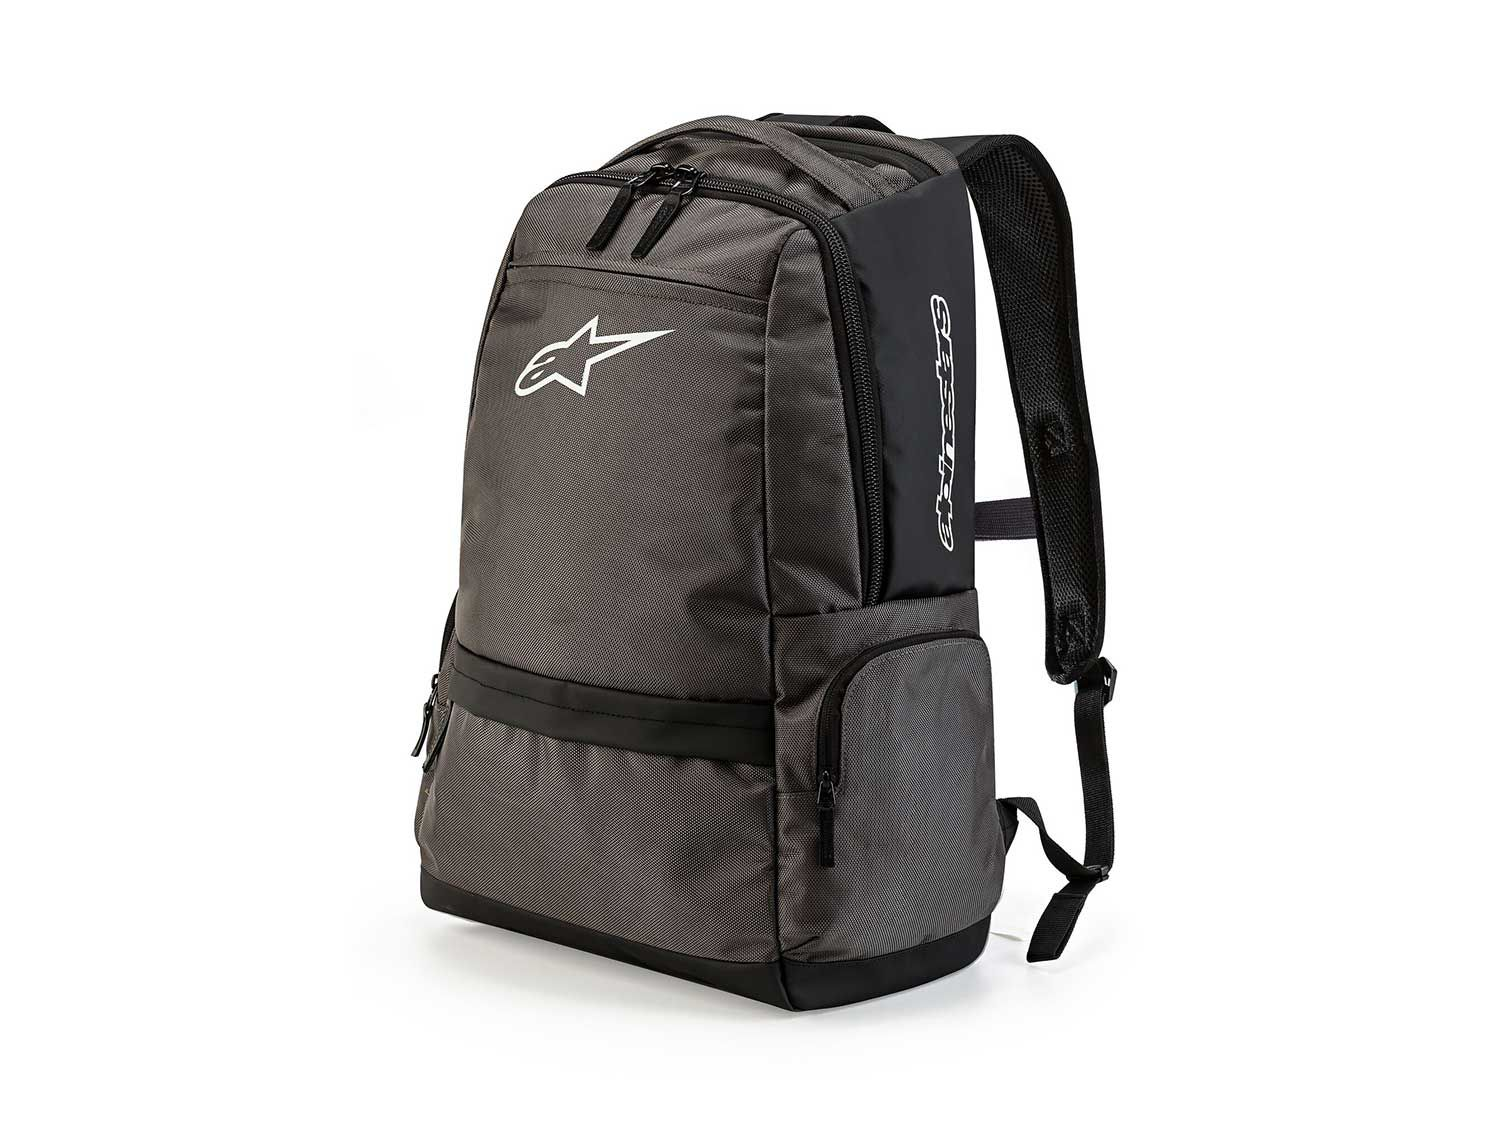 """The <a  href=""""https://www.amazon.com/Alpinestars-Black-Standby-Backpack-Default/dp/B074Q3BY9S/ref=as_li_ss_tl?ie=UTF8&linkCode=sl1&tag=mcy01-20&linkId=557e41010abfceb9909191131b3052f1&language=en_US"""">Standby Backpack</a> provides 21 liters capacity and is made from ballistic nylon fabric with tarpaulin elements incorporated. It has a three-quarter opening laptop compartment, internal organization pockets, an internal padded wall for comfort, and Airmesh padded shoulder straps."""